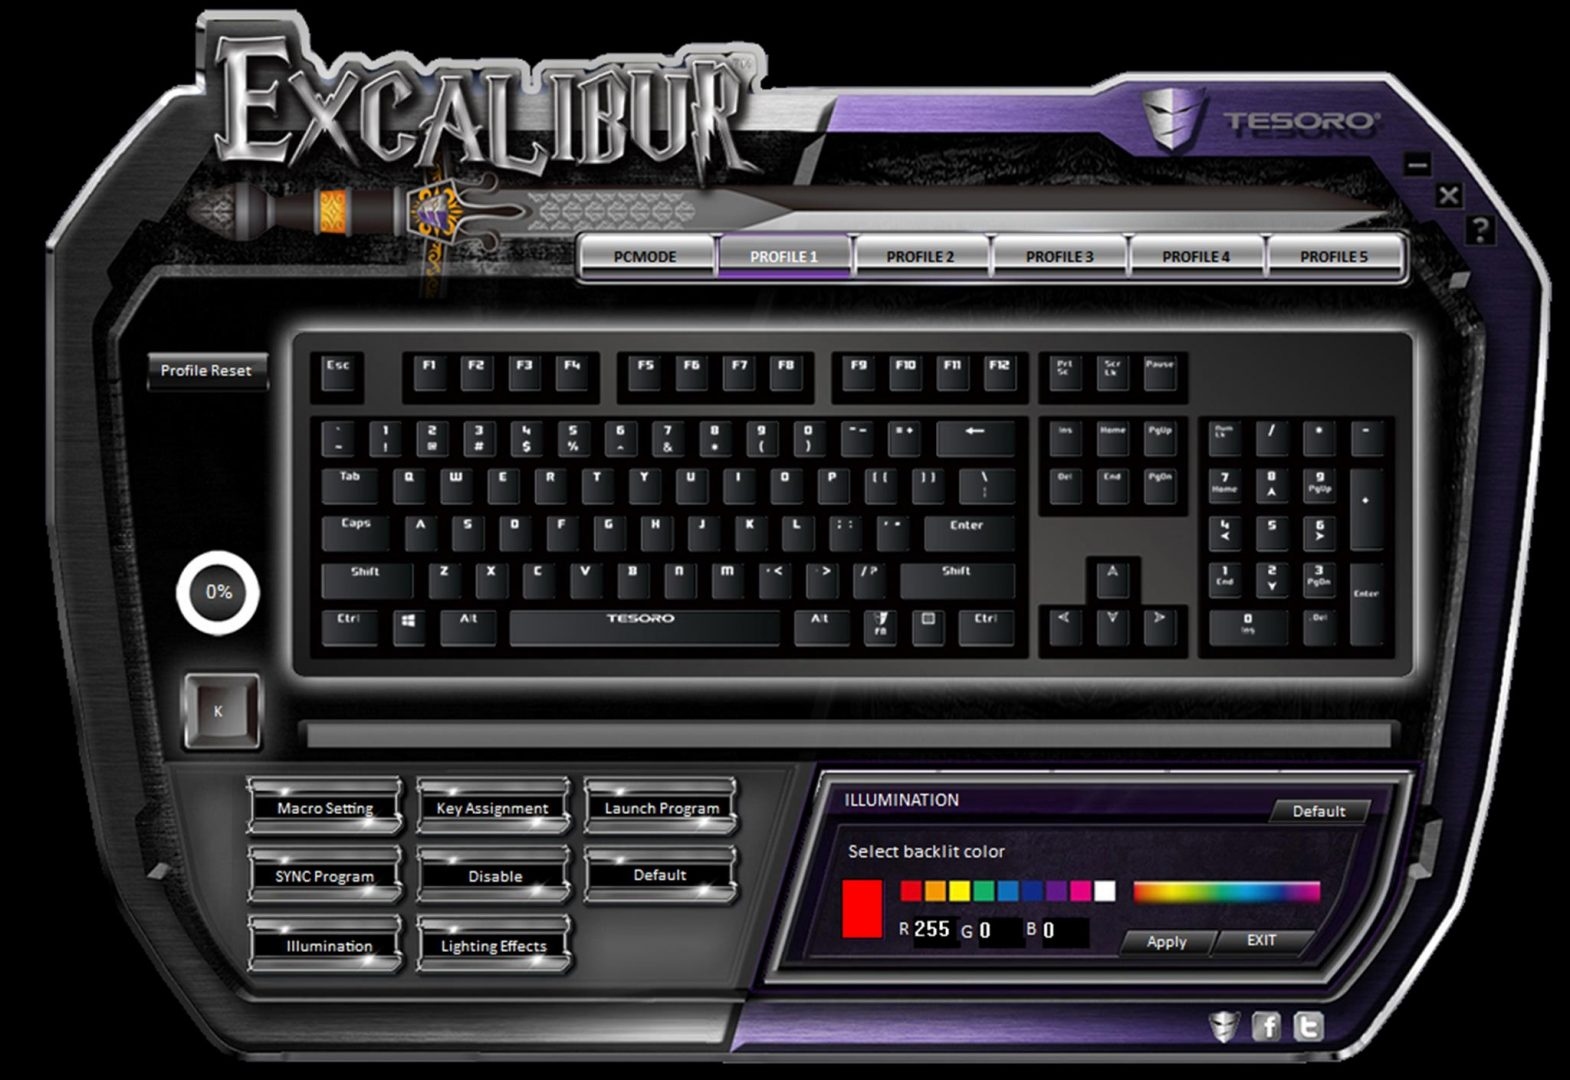 tesoro excalibur spectrum software 3